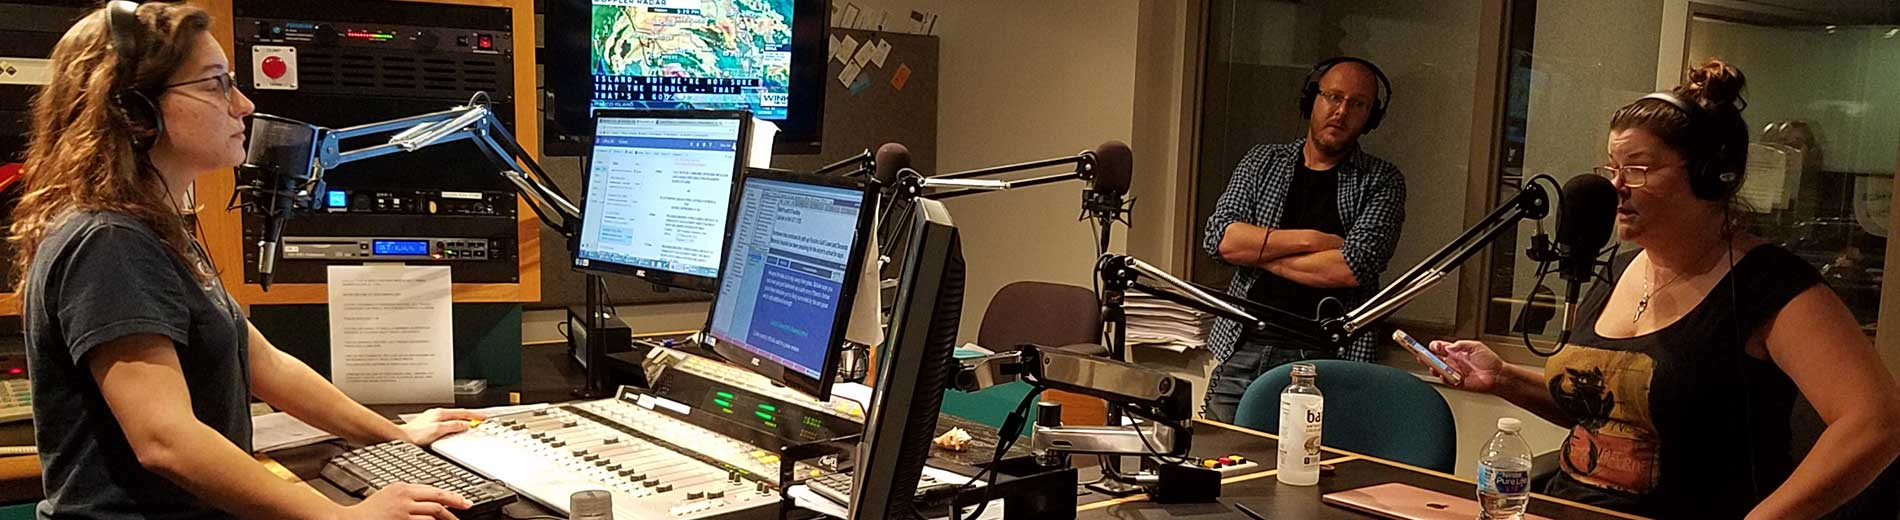 Photo shows WGCU-FM studio